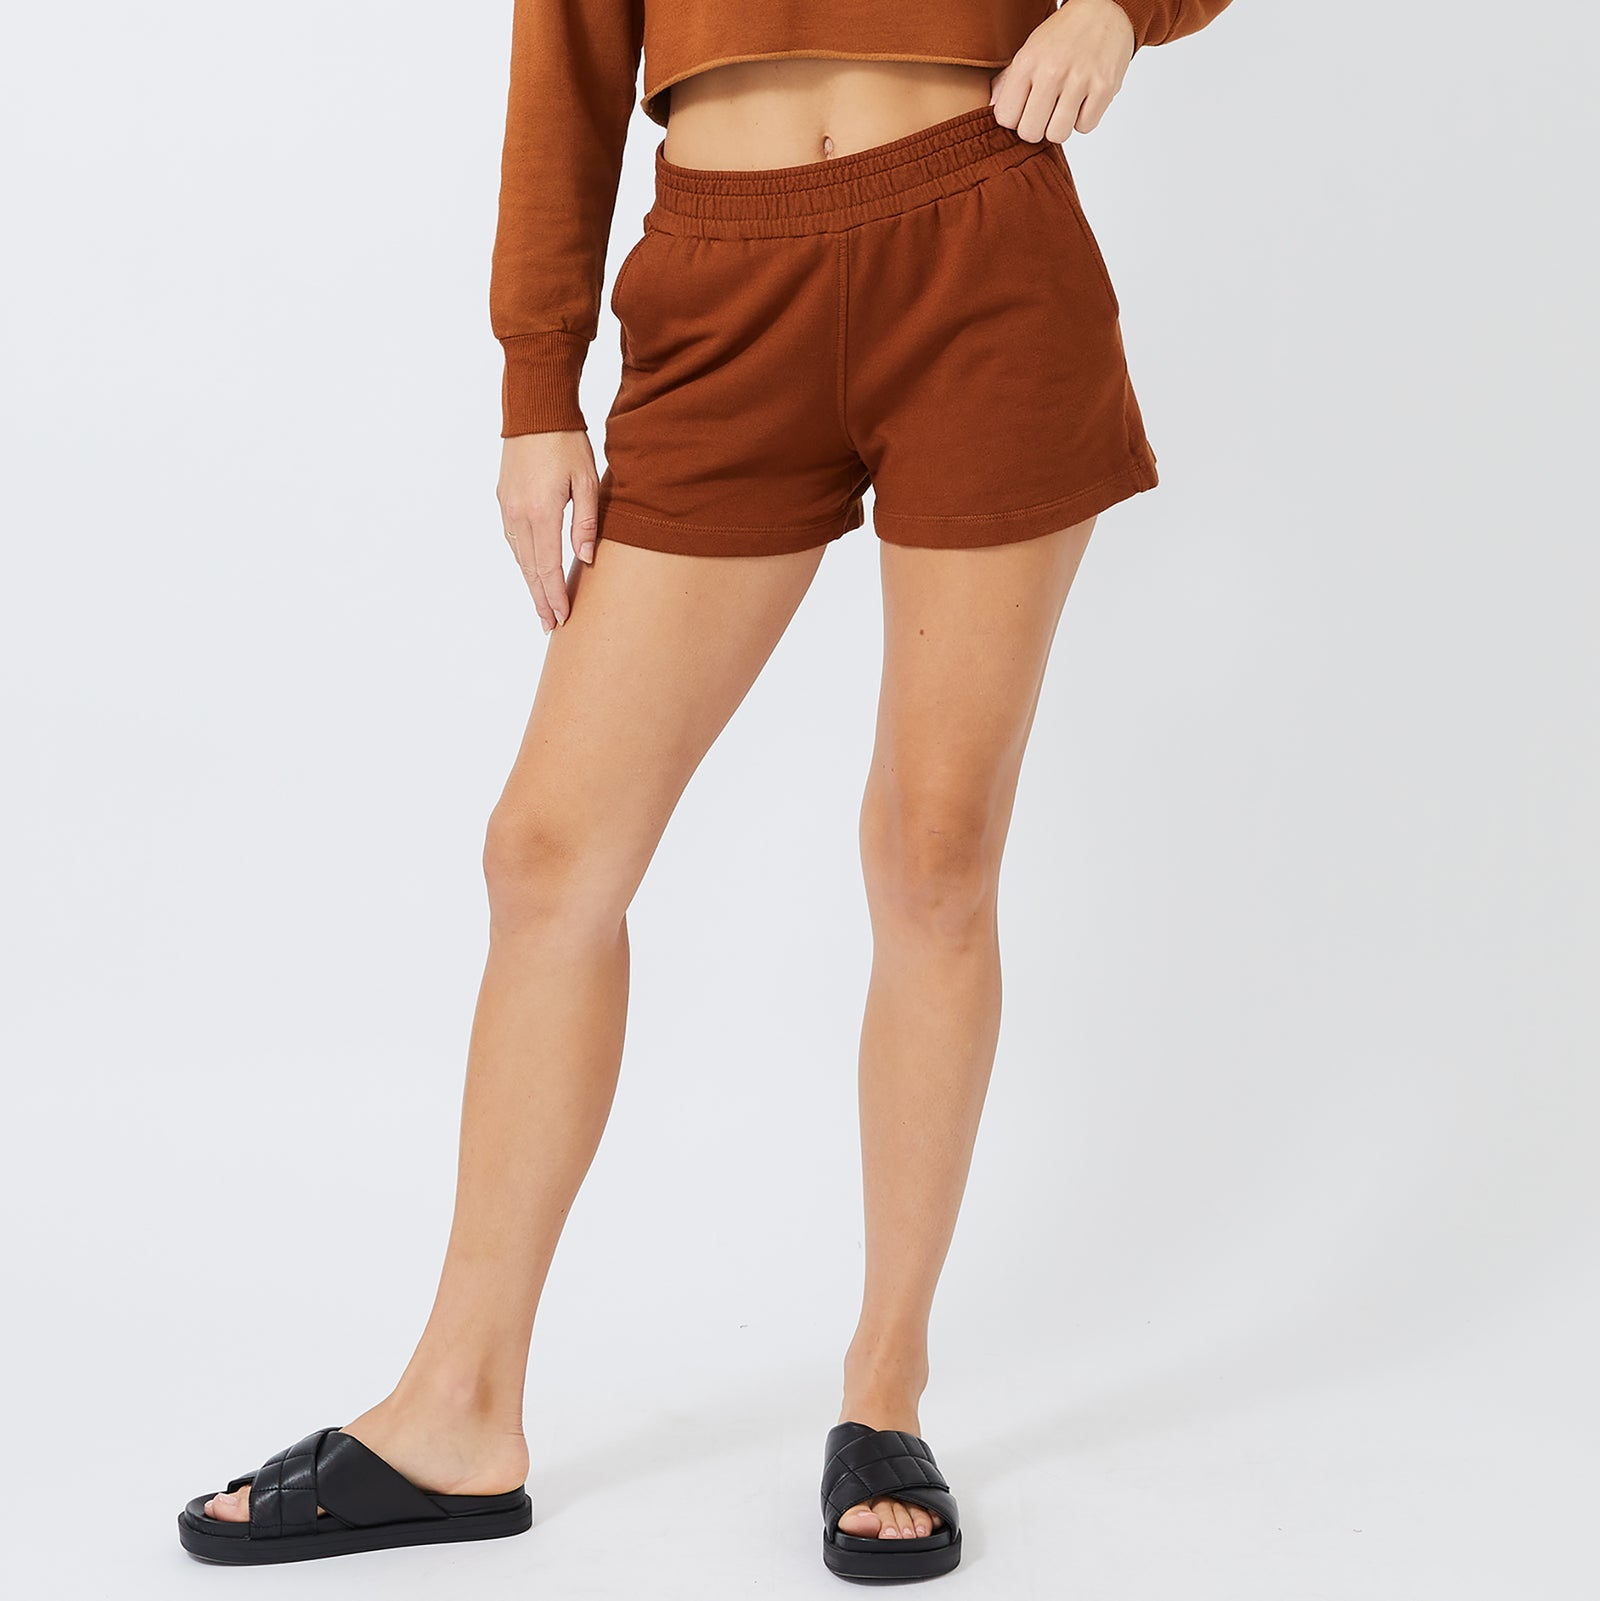 Ex-Boyfriend Shorts (4890726662246)